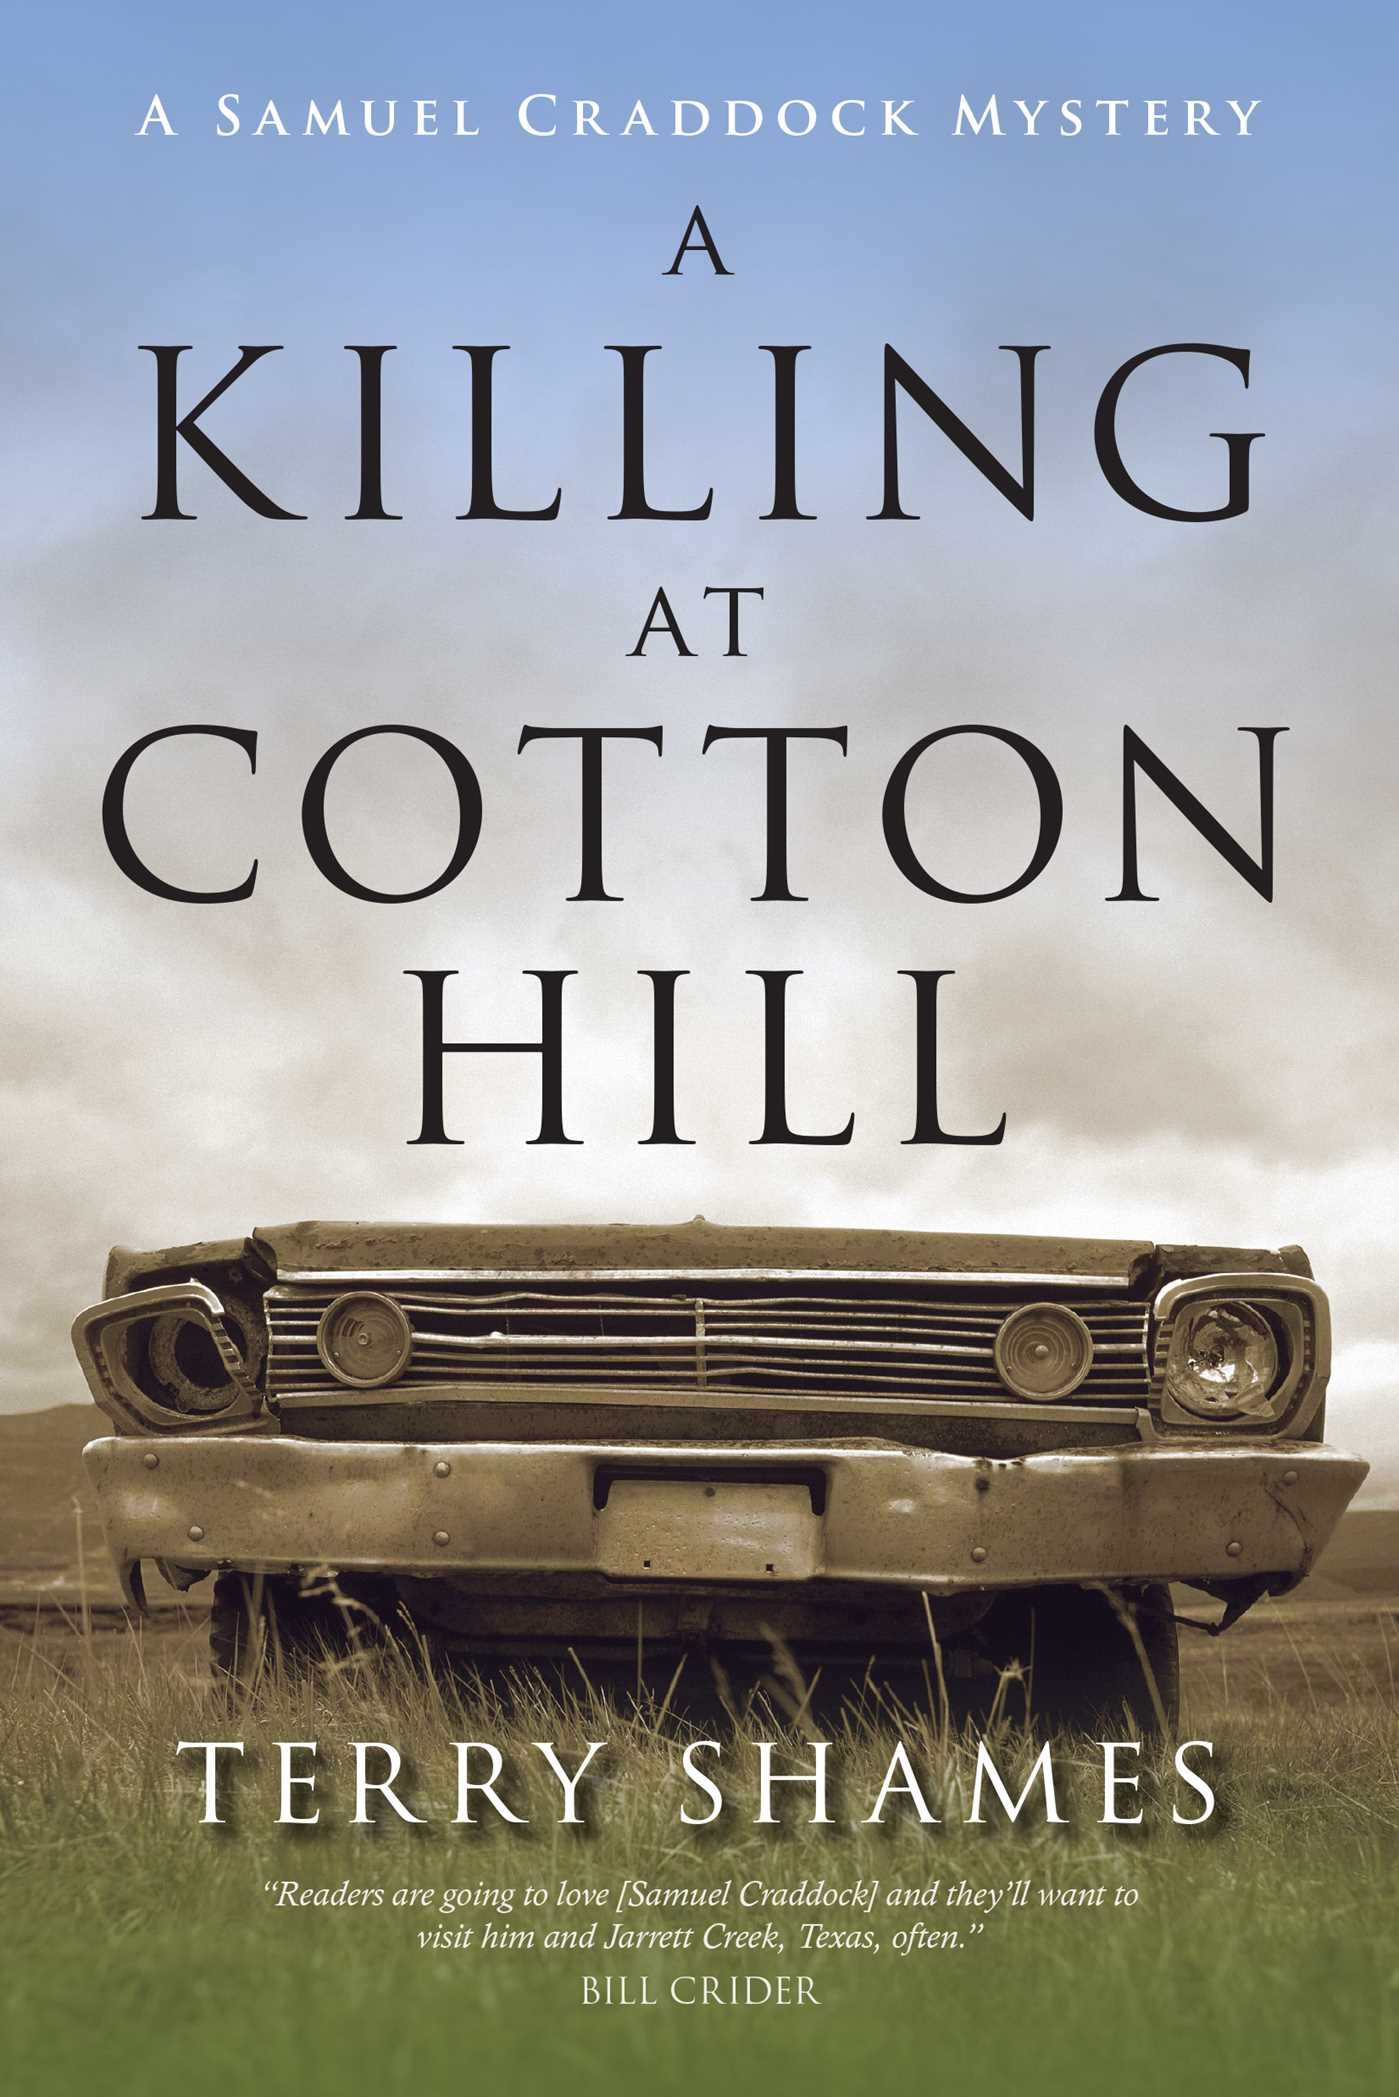 A Killing at Cotton Hill A Samuel Craddock Mystery